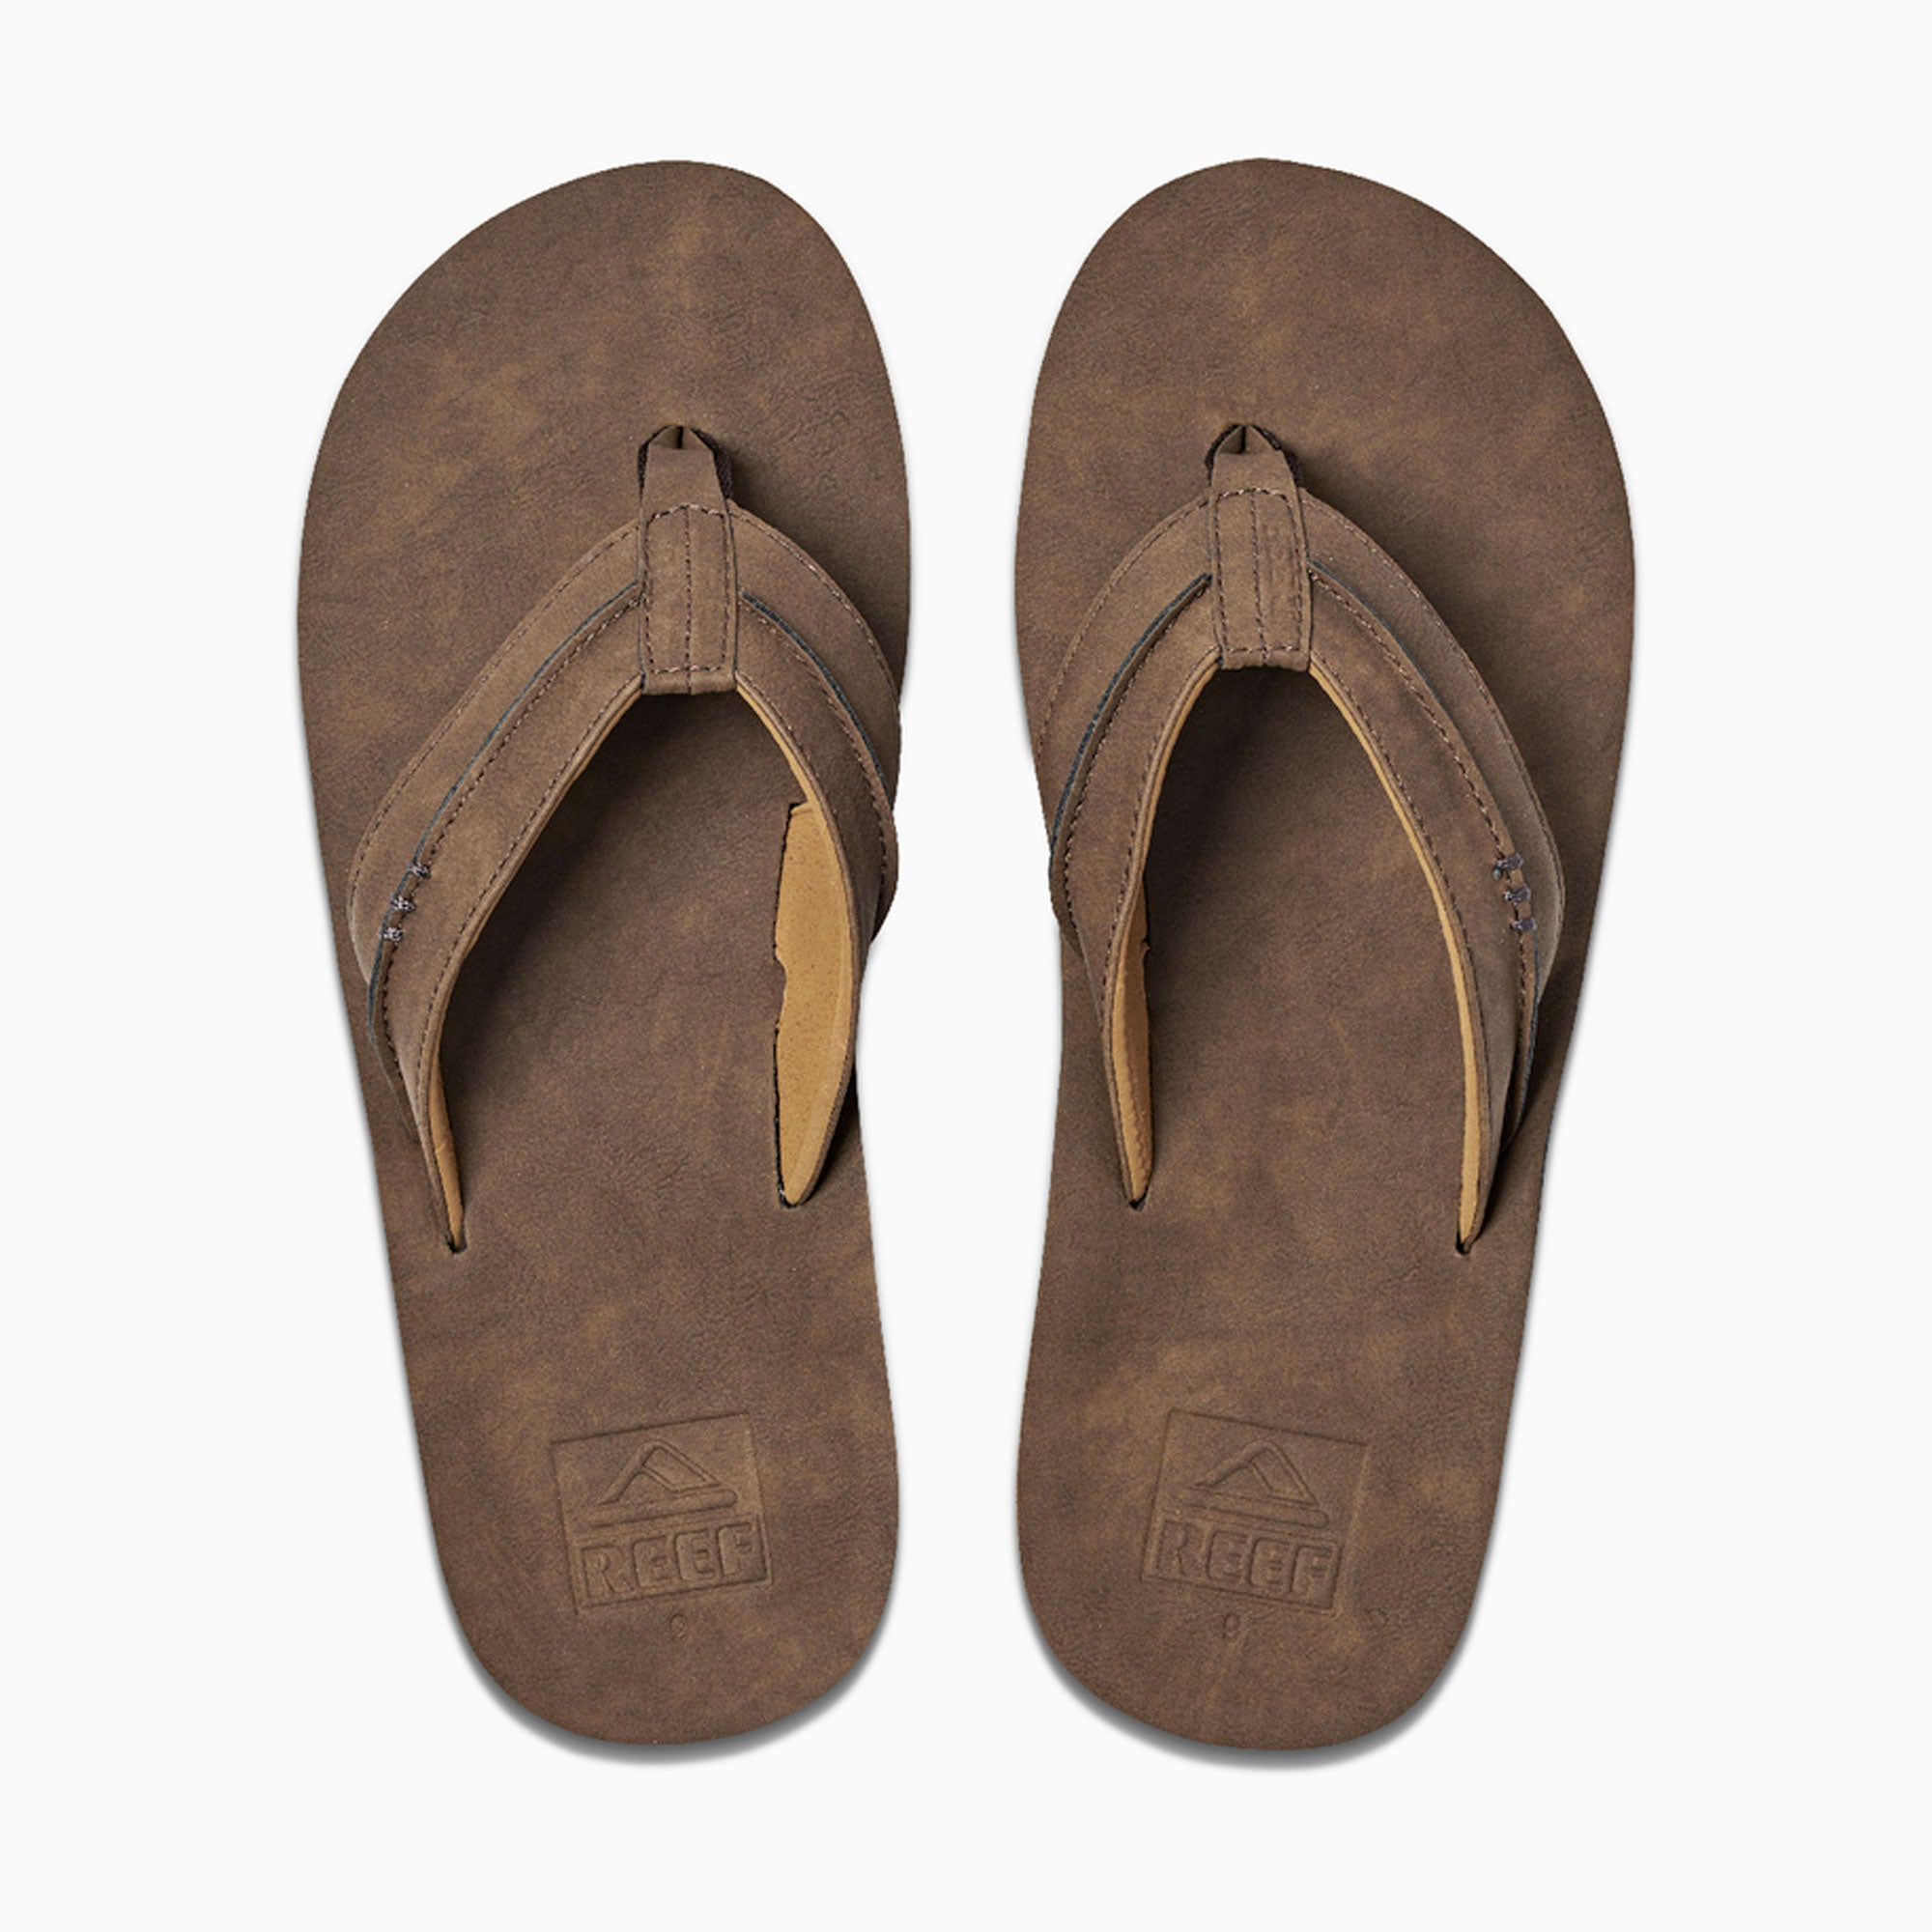 Reef Marbea SL Men's Sandals - Espresso